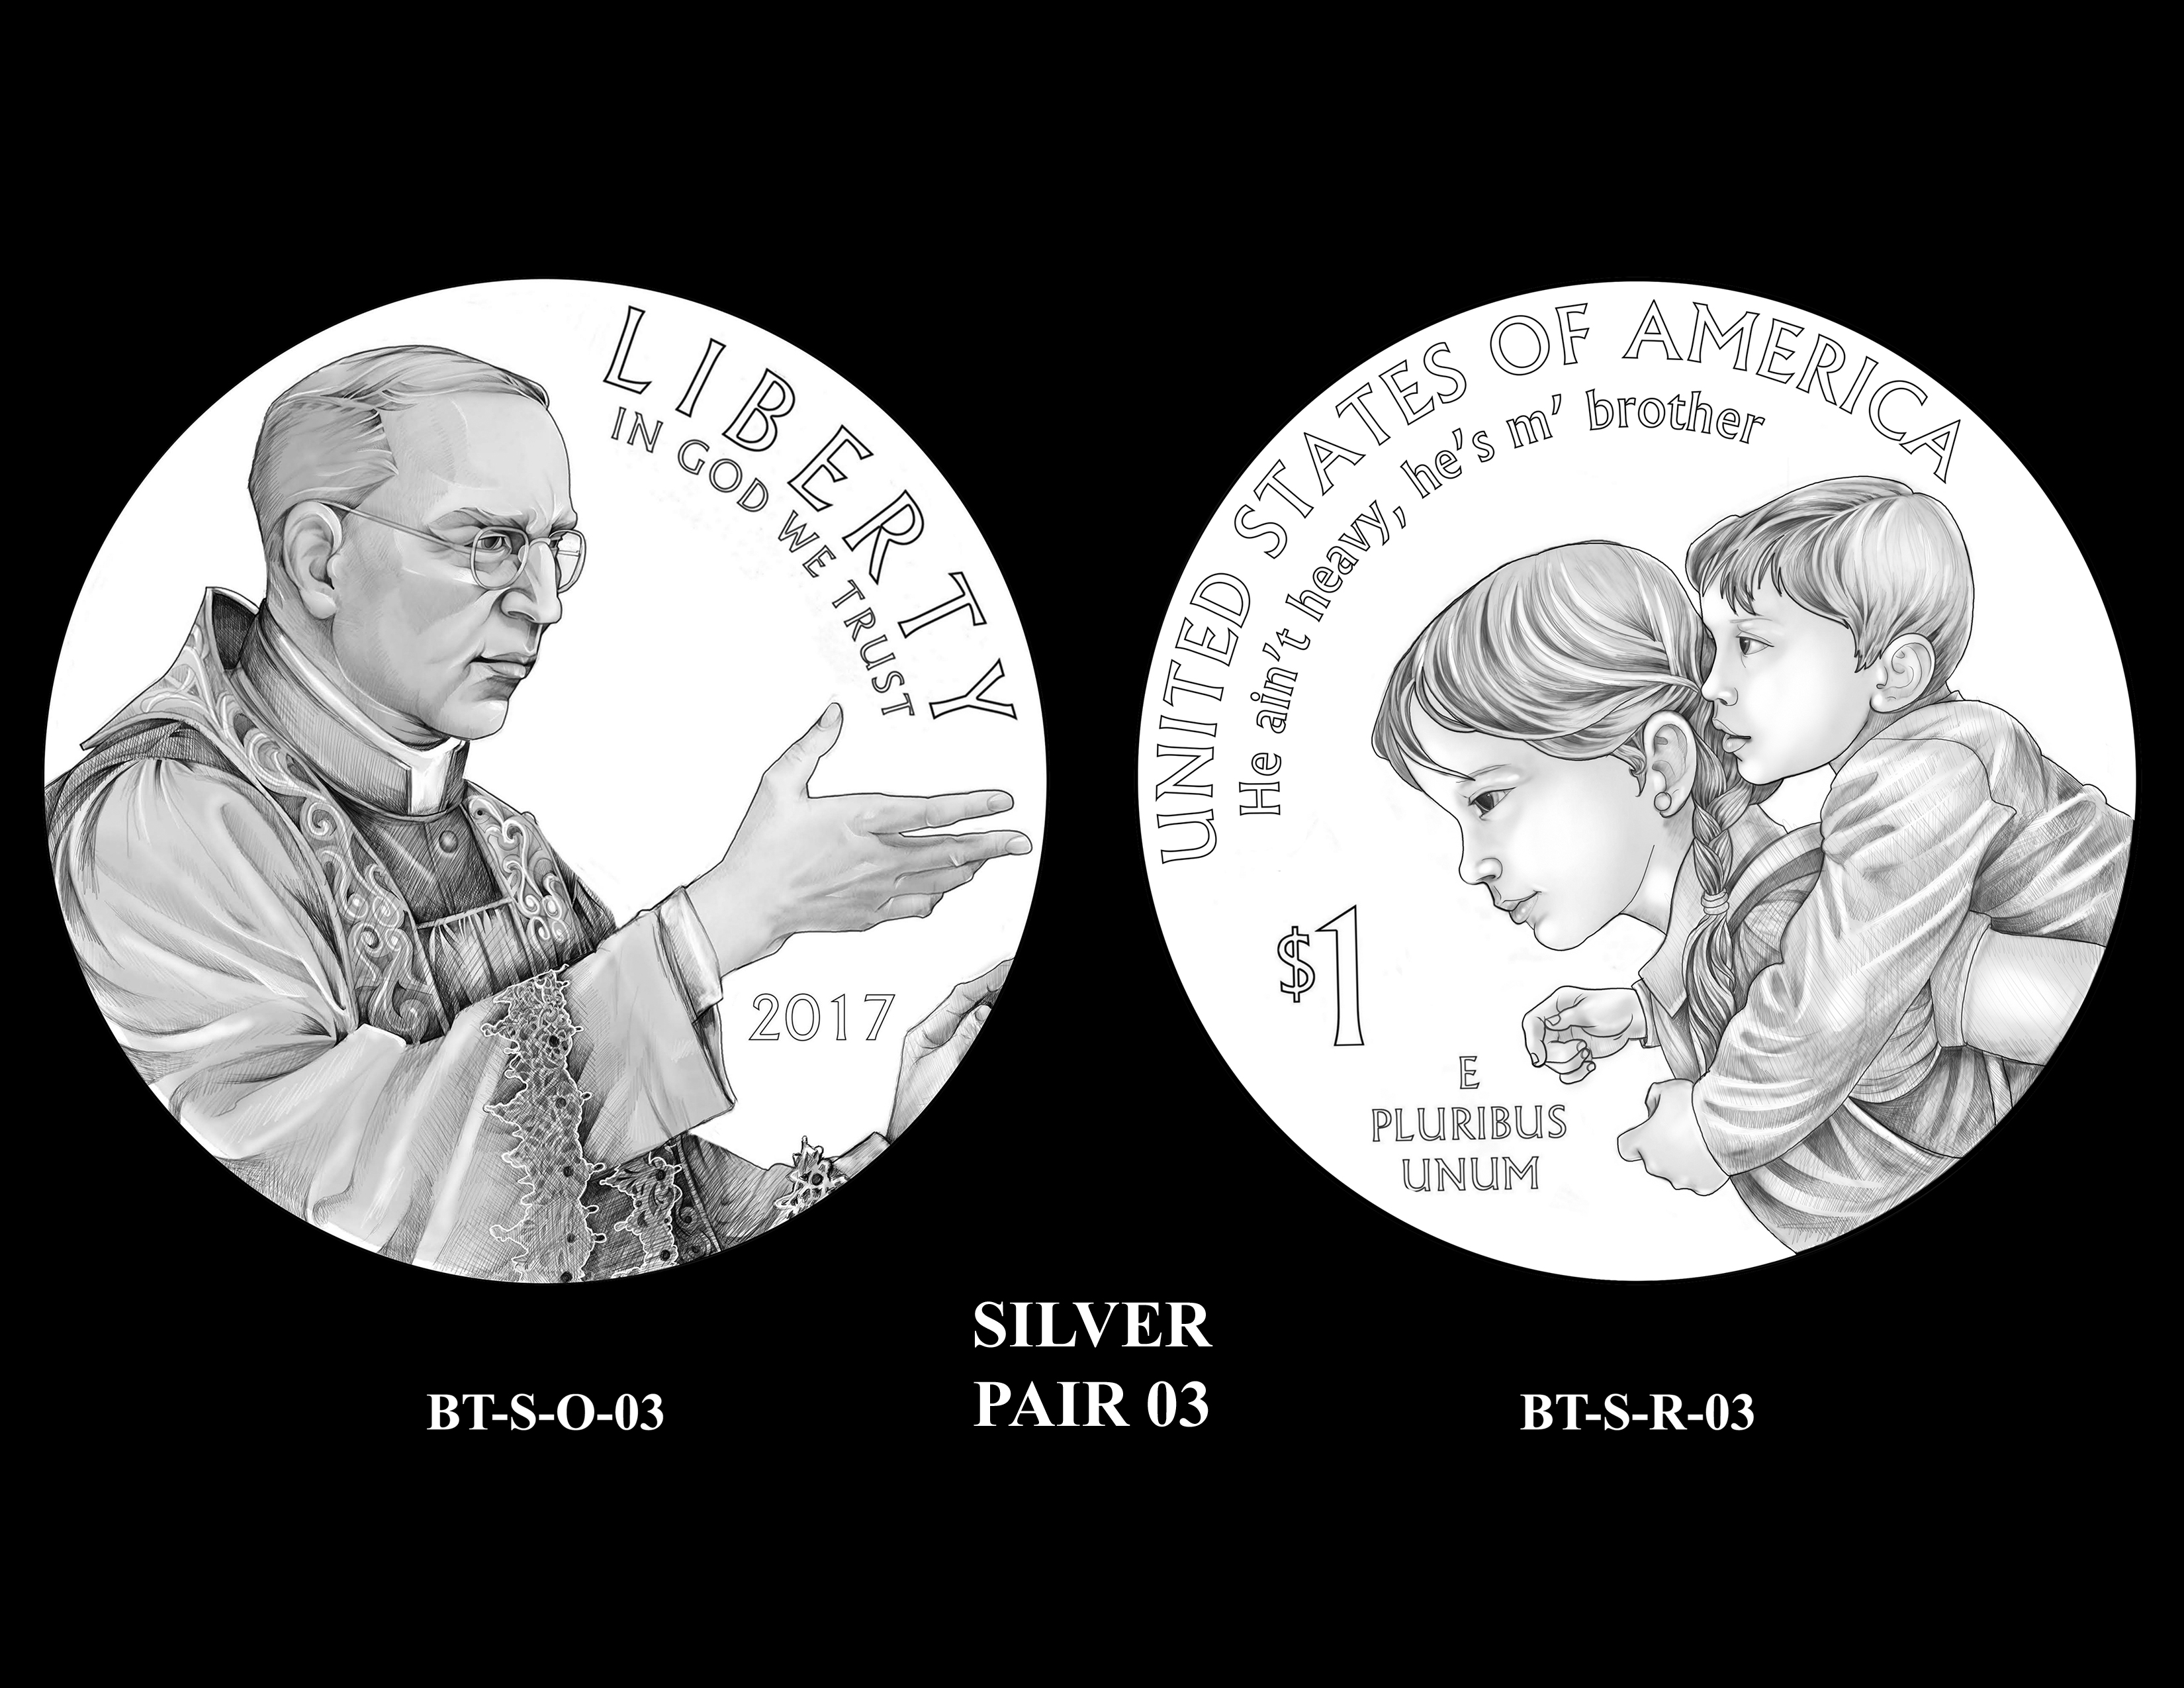 Silver-Pair-03 -- 2017 Boystown Centennial Commemorative Coin  Program